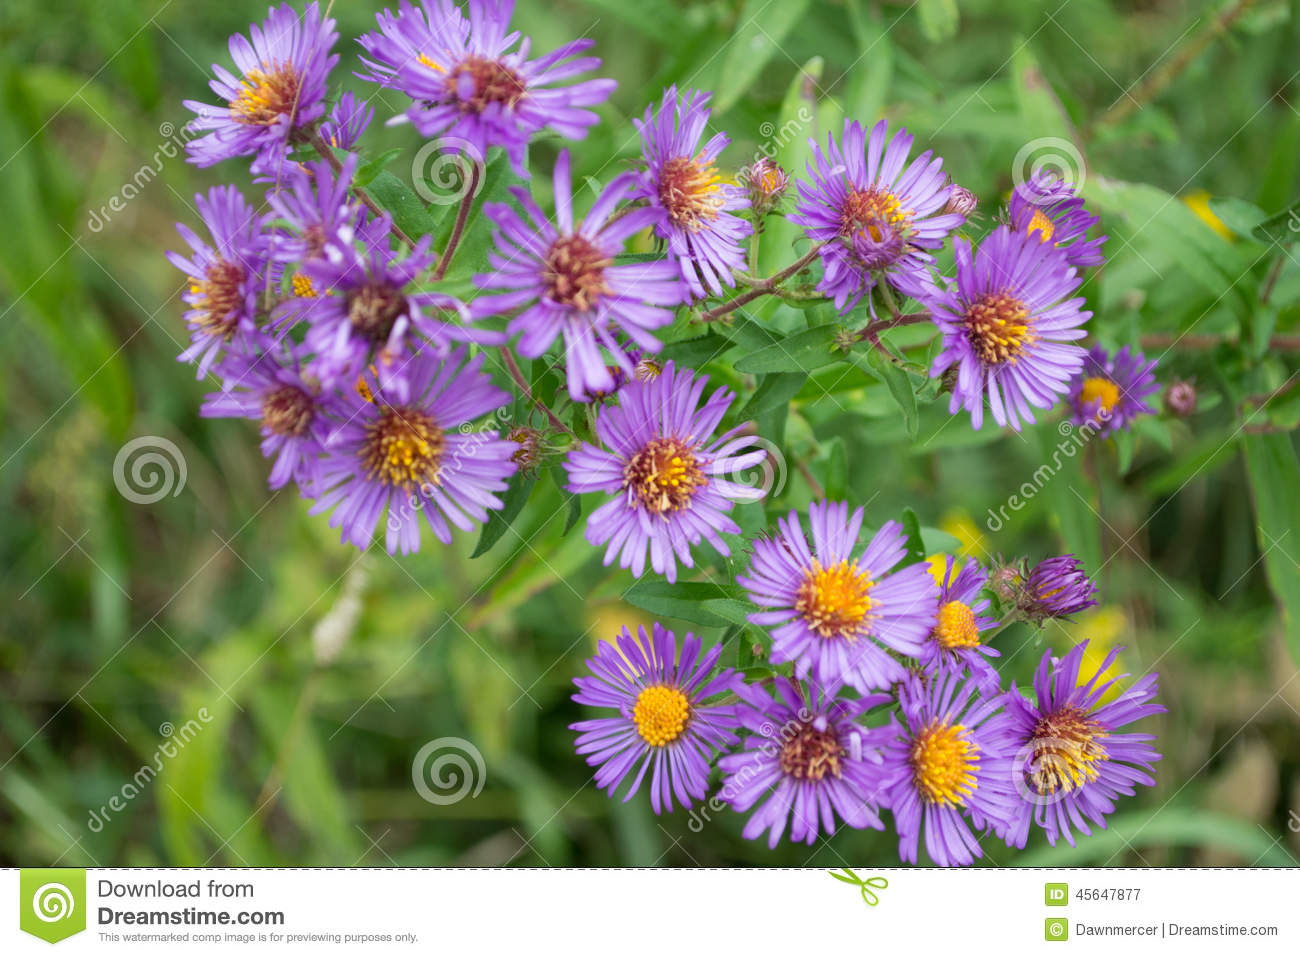 purple perennials new england aster flowers stock photo  image, Beautiful flower